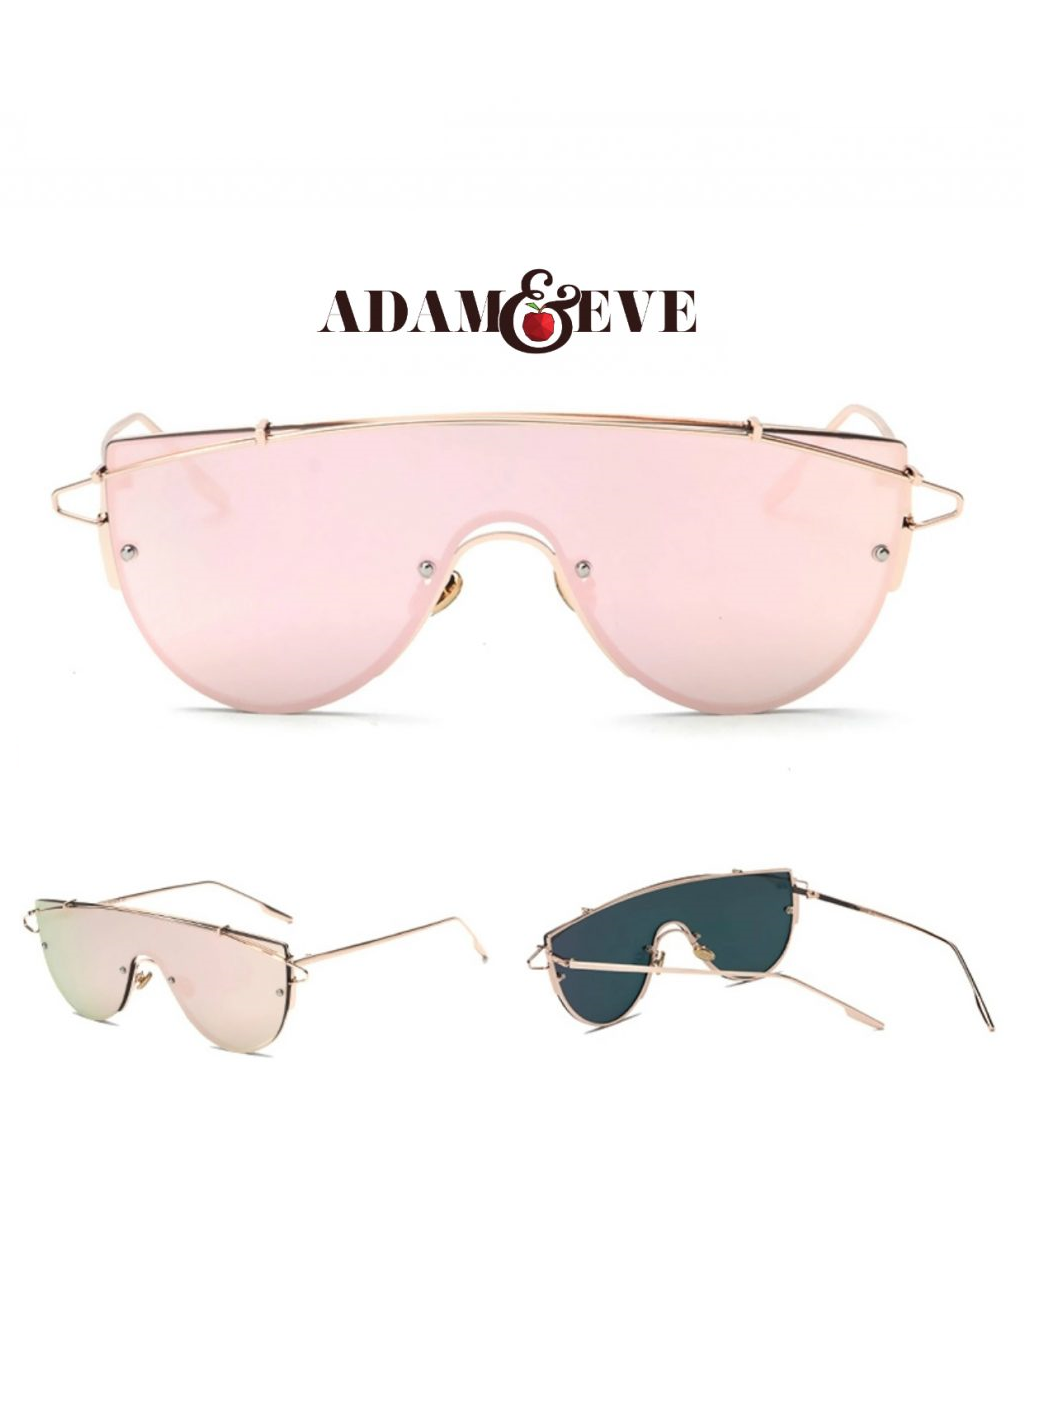 pink sunglasses 2017 v1